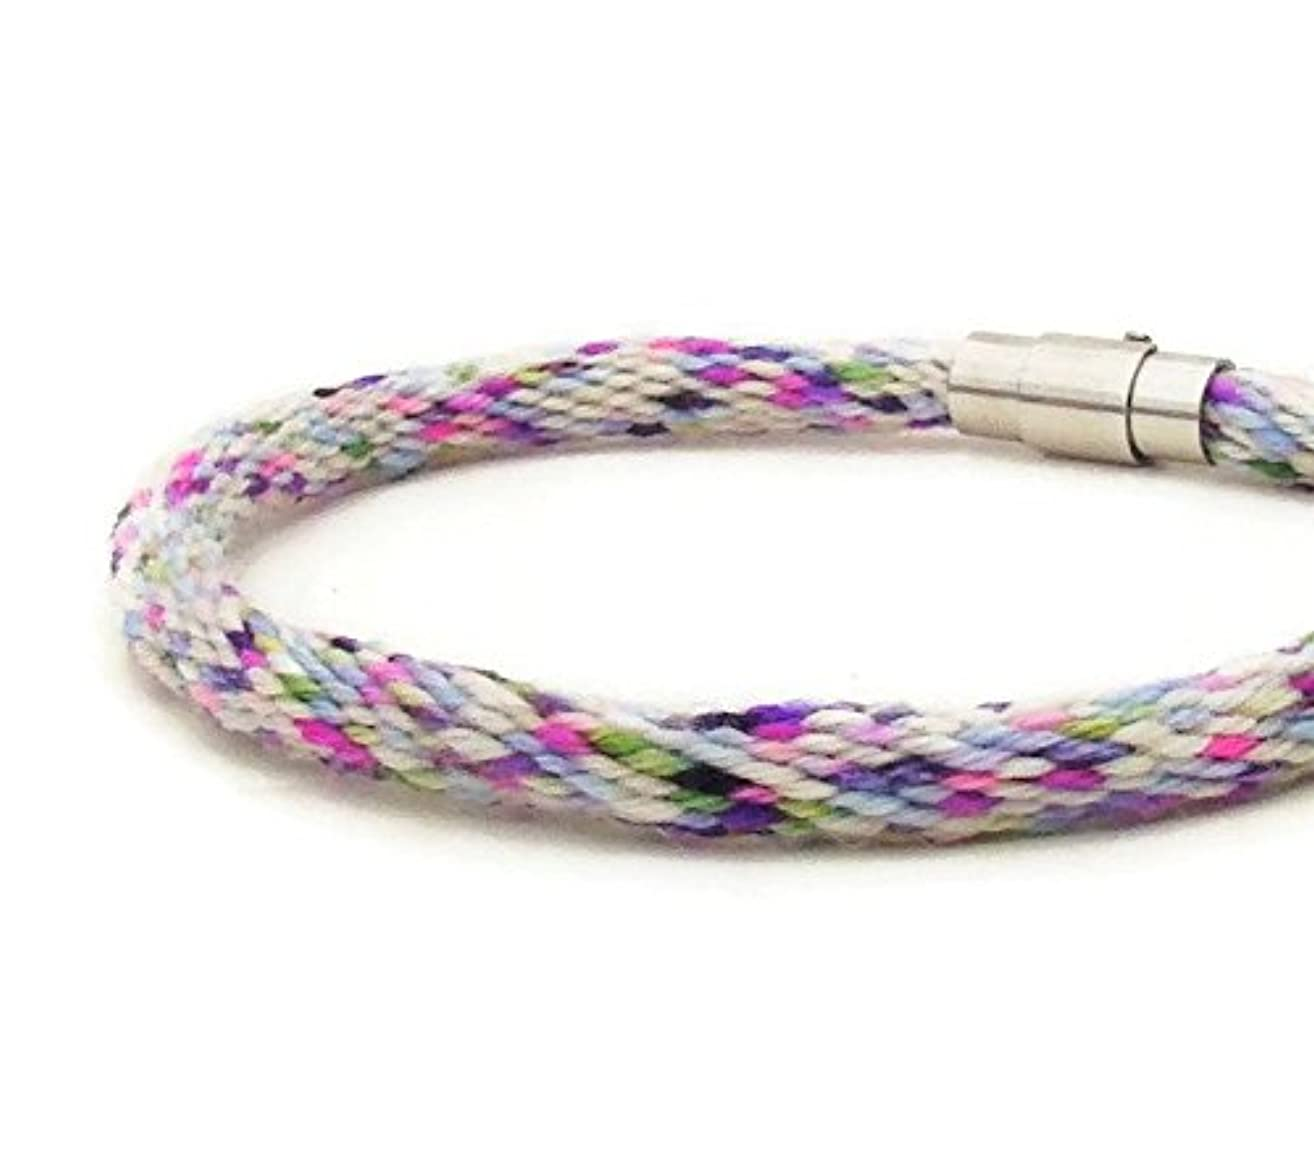 Woven 28 strand, white and purple specialty yarn friendship kumihimo bracelet with stainless steel magnetic clasp